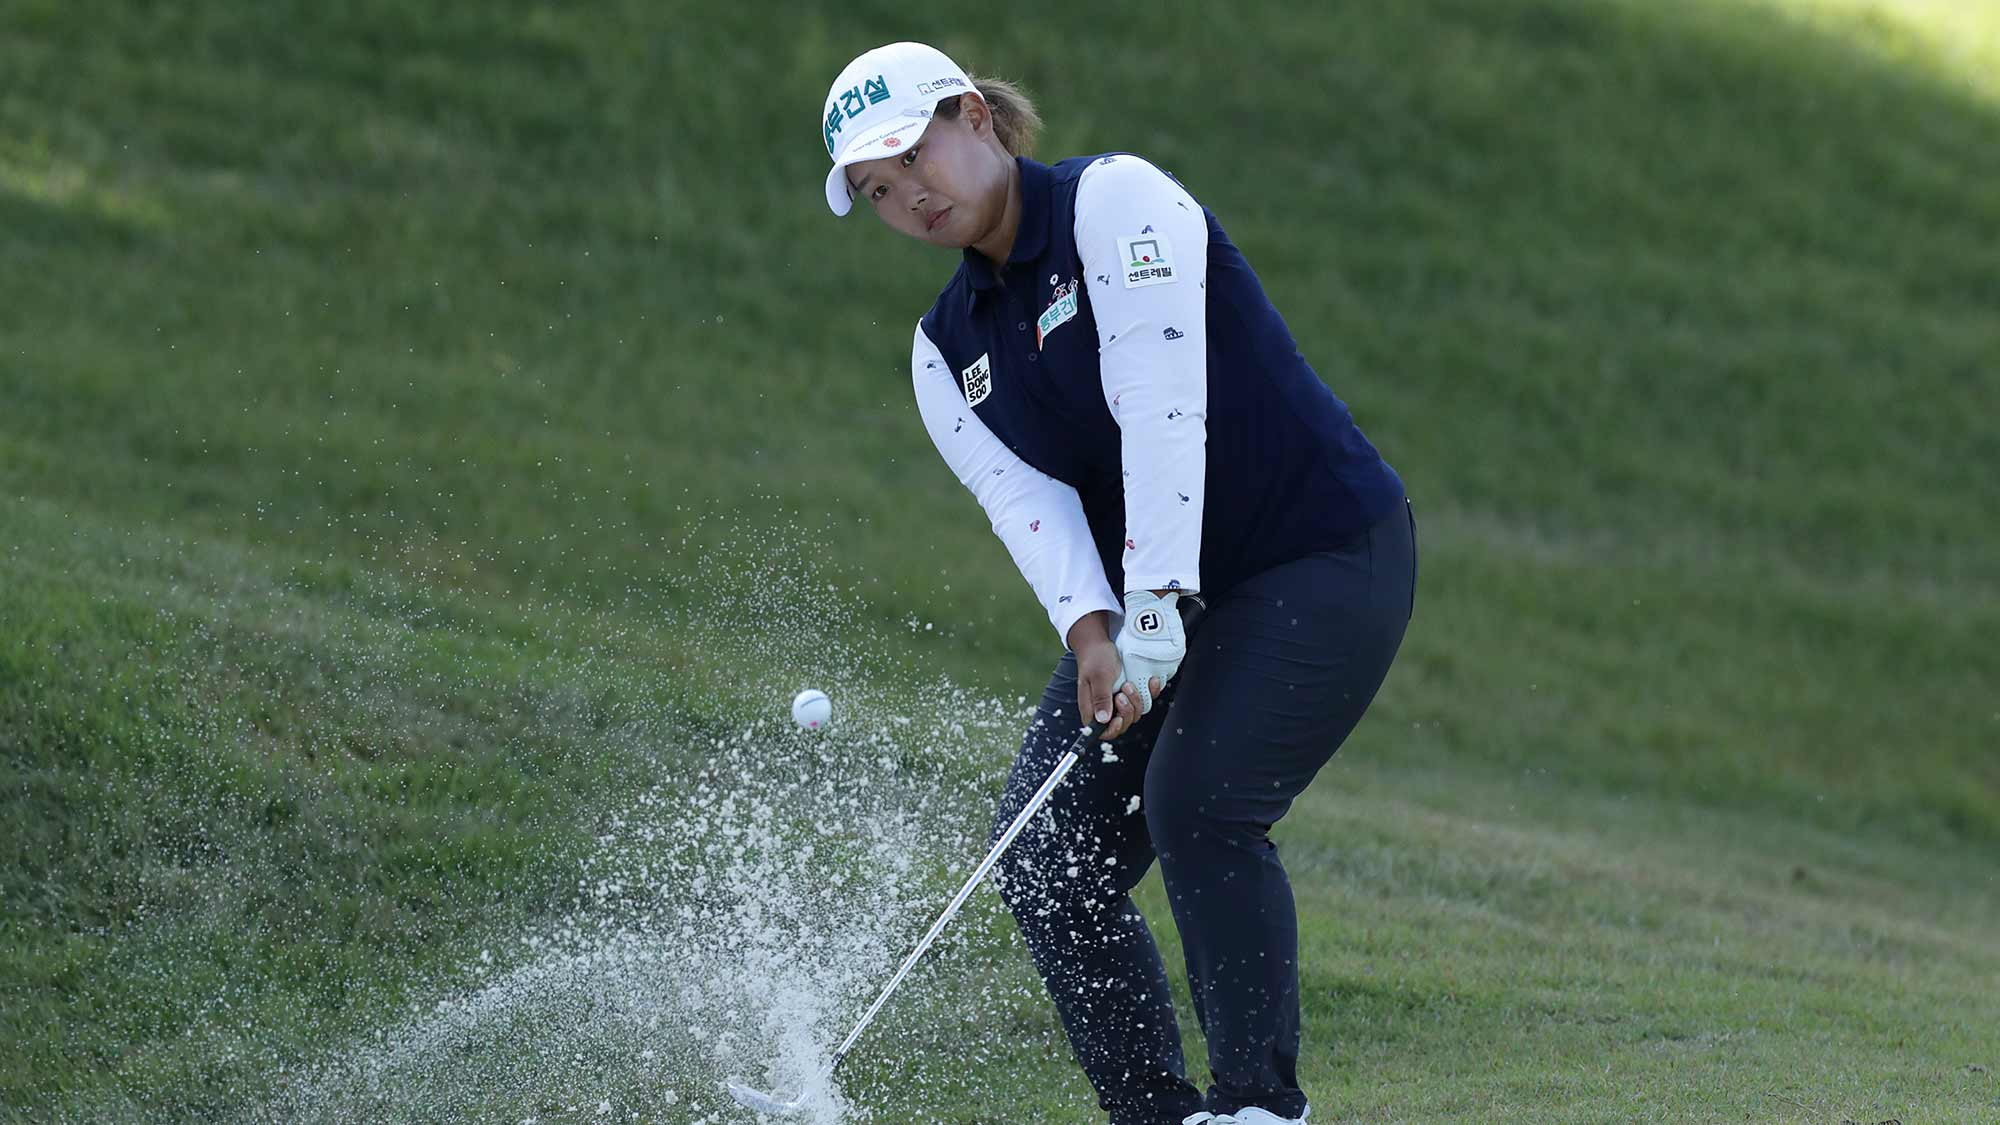 Hee Won Na of the Republic of Korea plays a bunker shot on the fifteen hole during Round 2 of 2019 BMW Ladies Championship at LPGA International Busan on October 25, 2019 in Busan, Republic of Korea